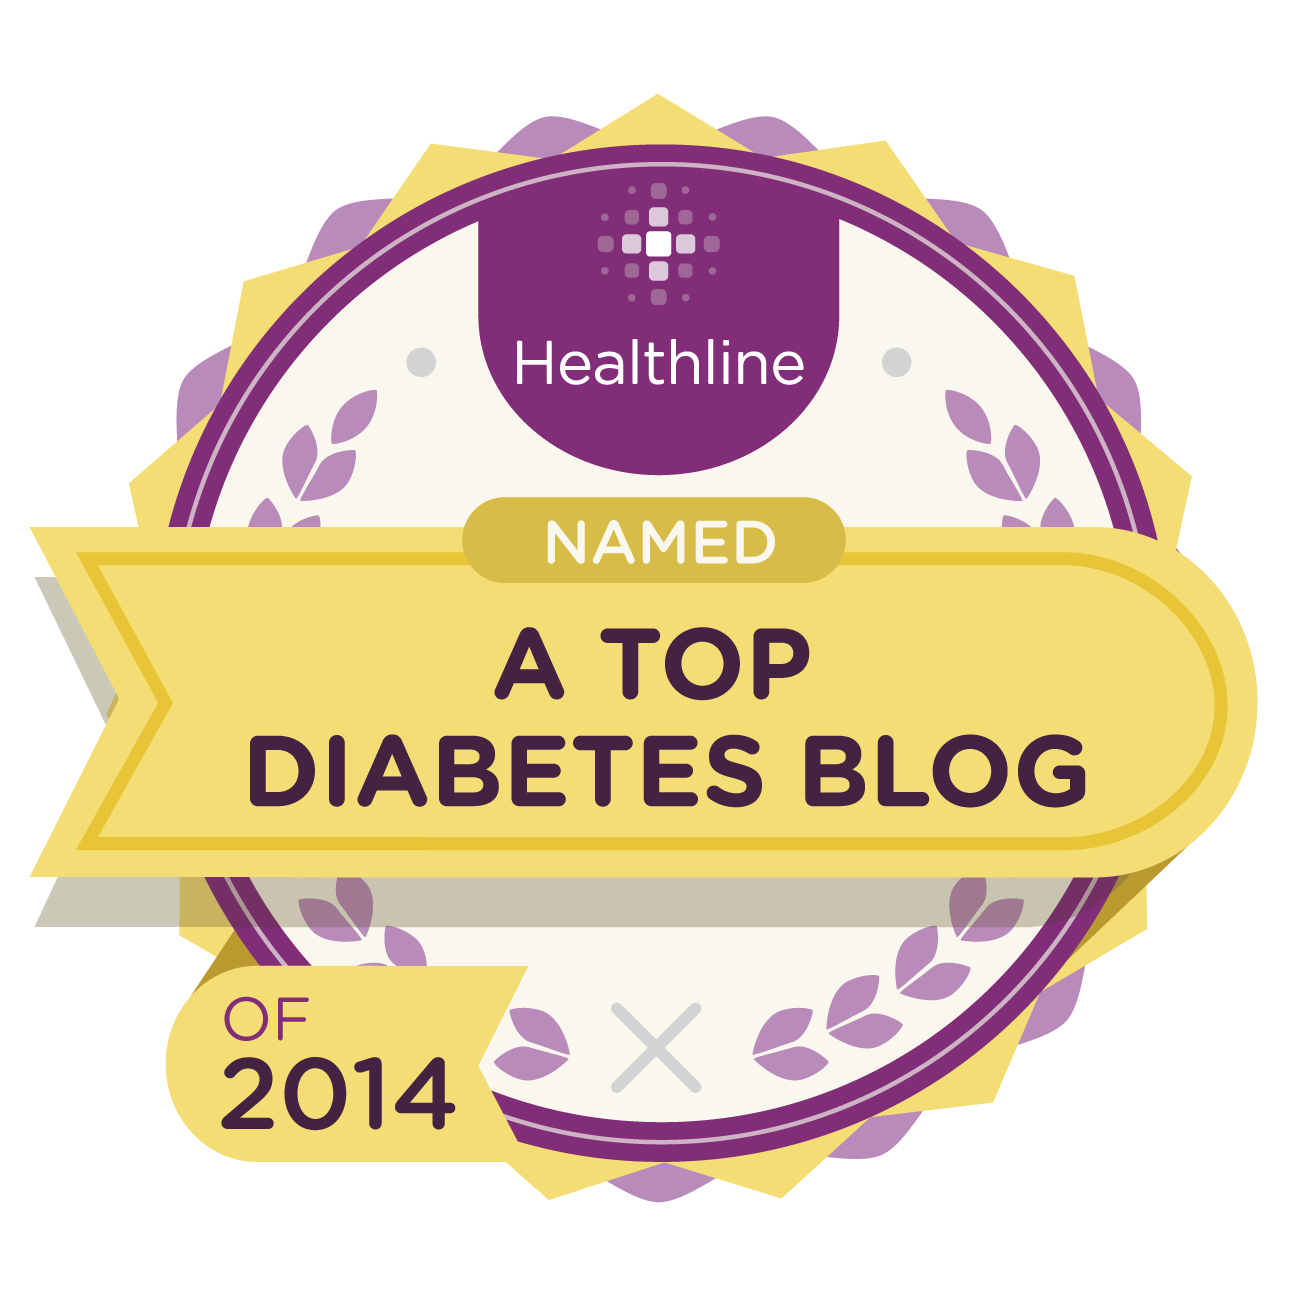 The 17 Best Diabetes Health Blogs of 2014